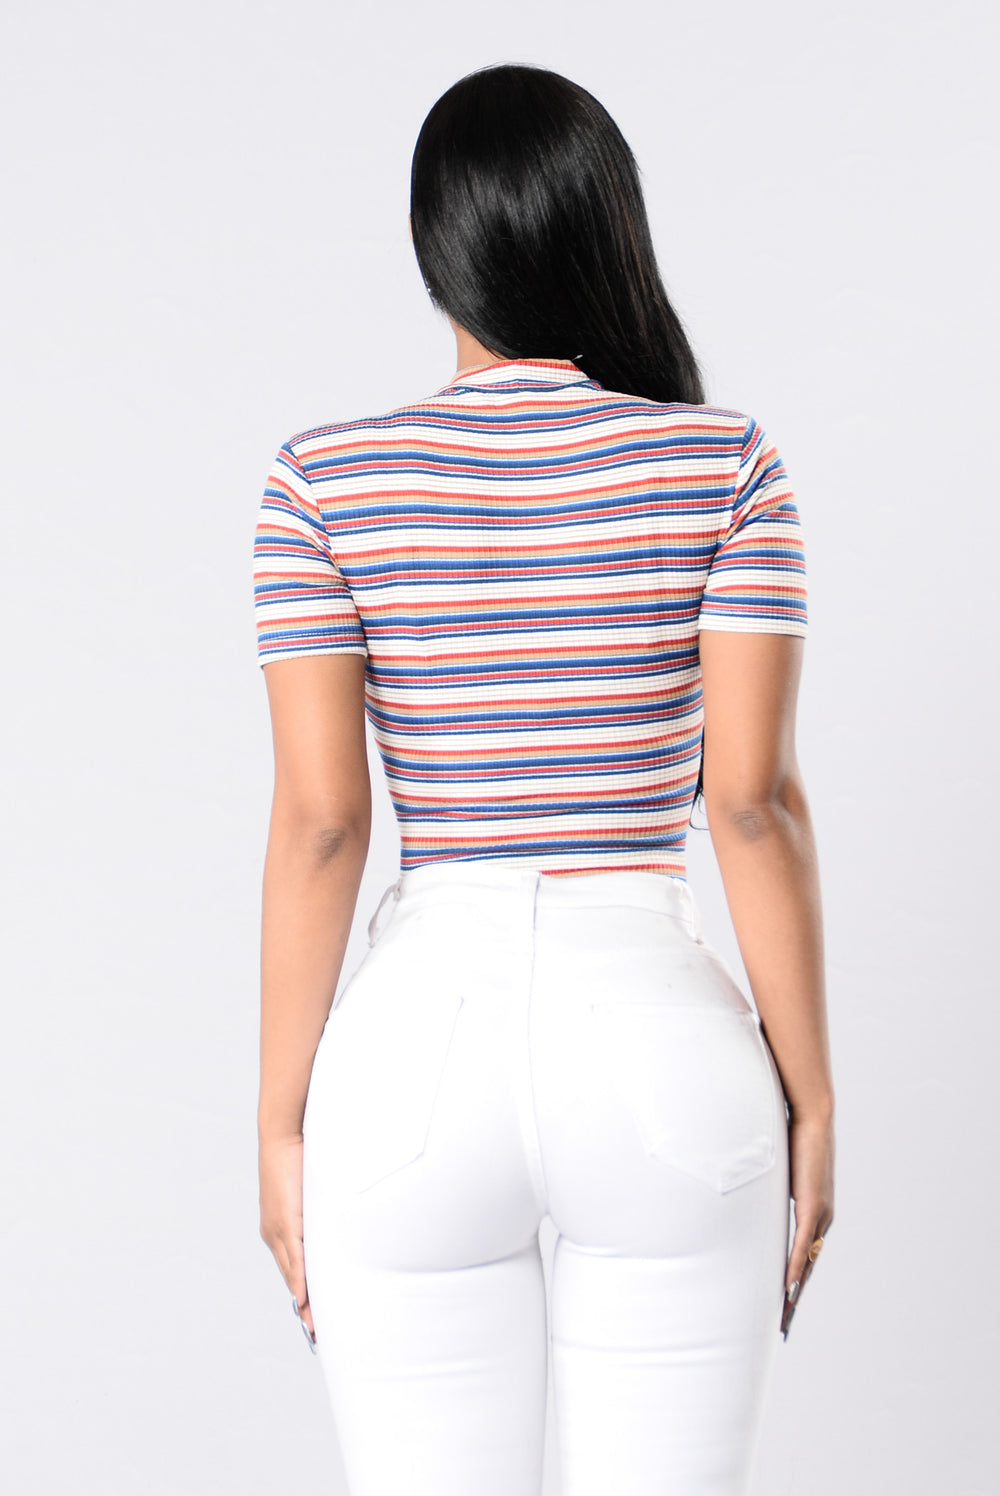 Stripes Types Bodysuit - Blue Stripe